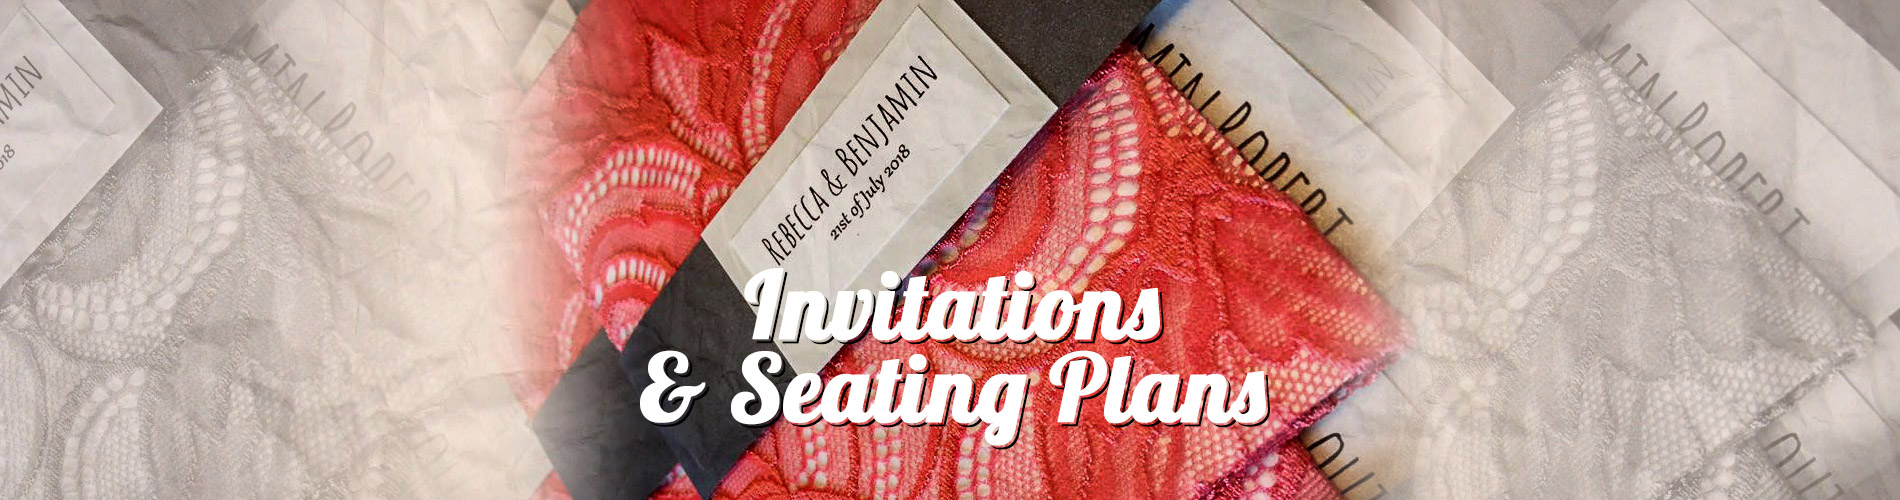 Invitations & Seating Plans